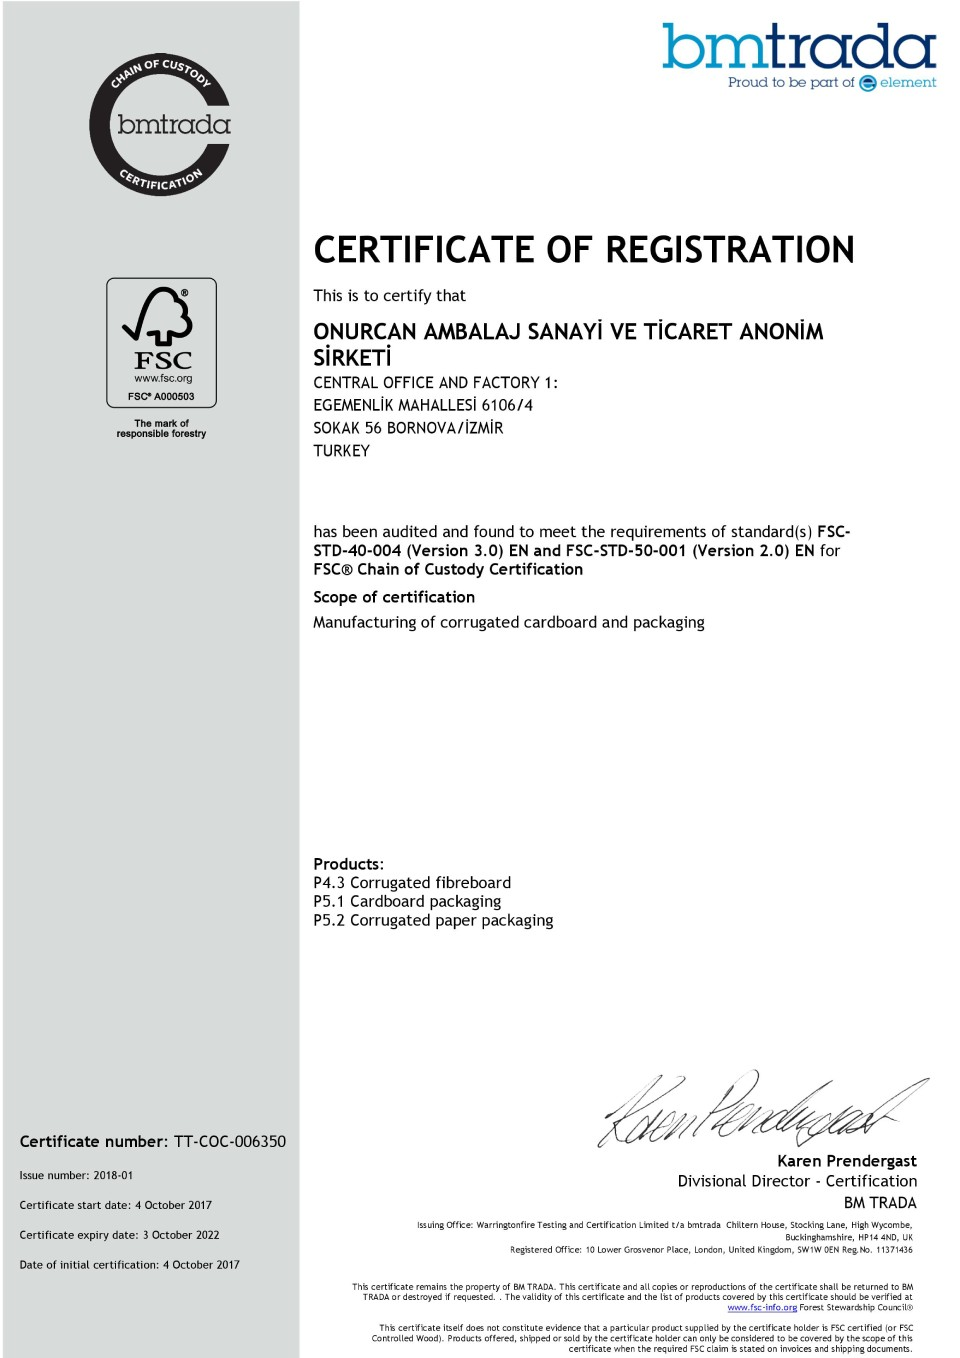 Management system certificates